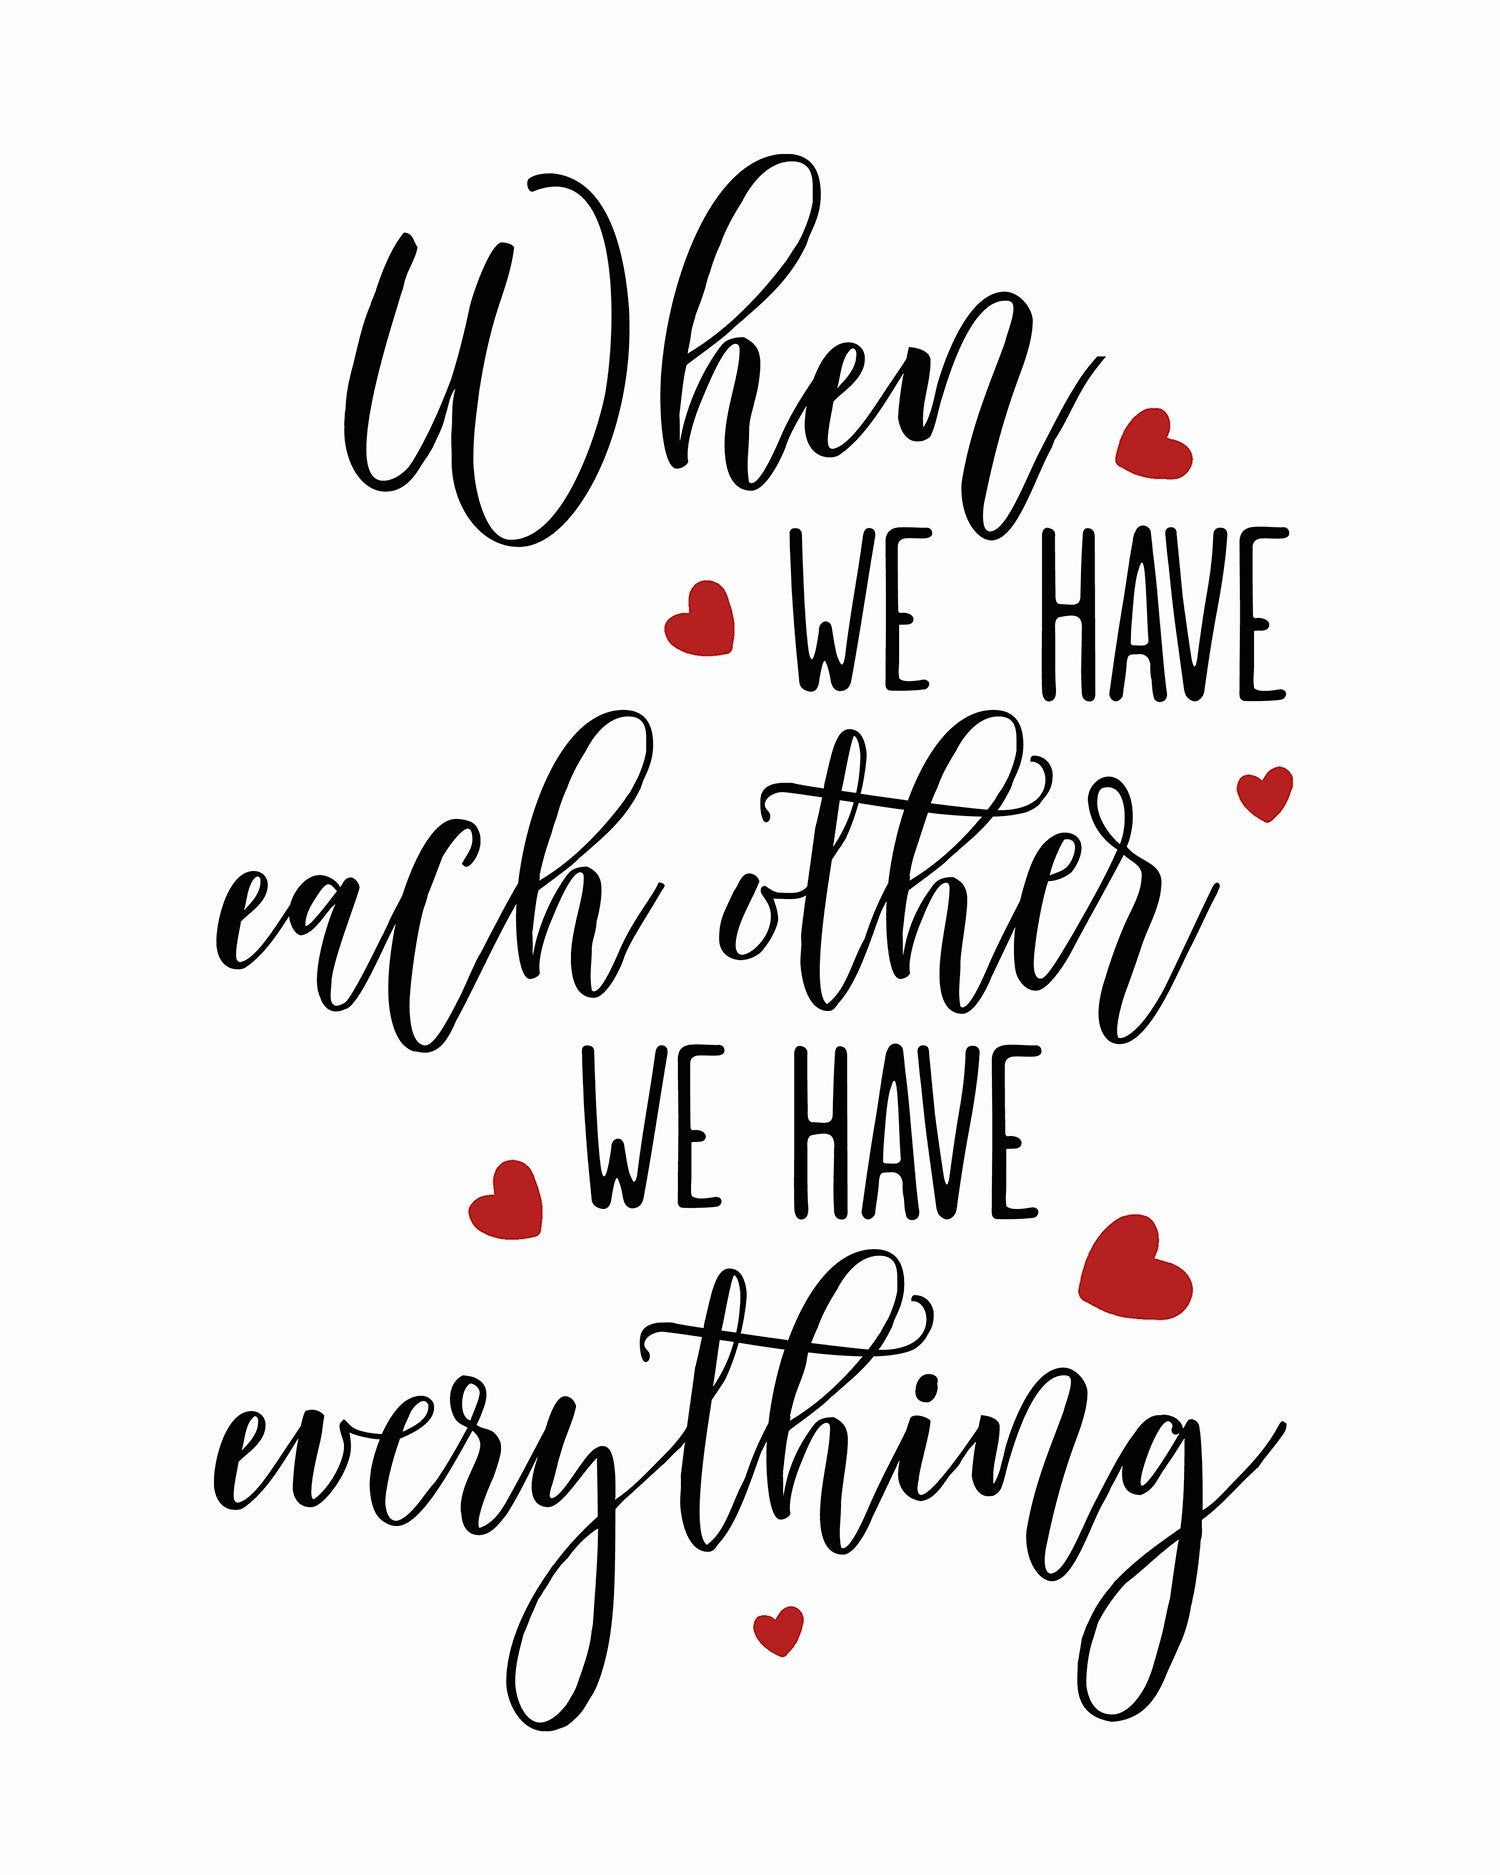 Wedding Gift, Each Other Quote, Wedding Card, Wedding Print, Wedding Sign, Wedding Printable, Red Black Print, Heart Print, Love Print -   19 wedding Quotes for cards ideas